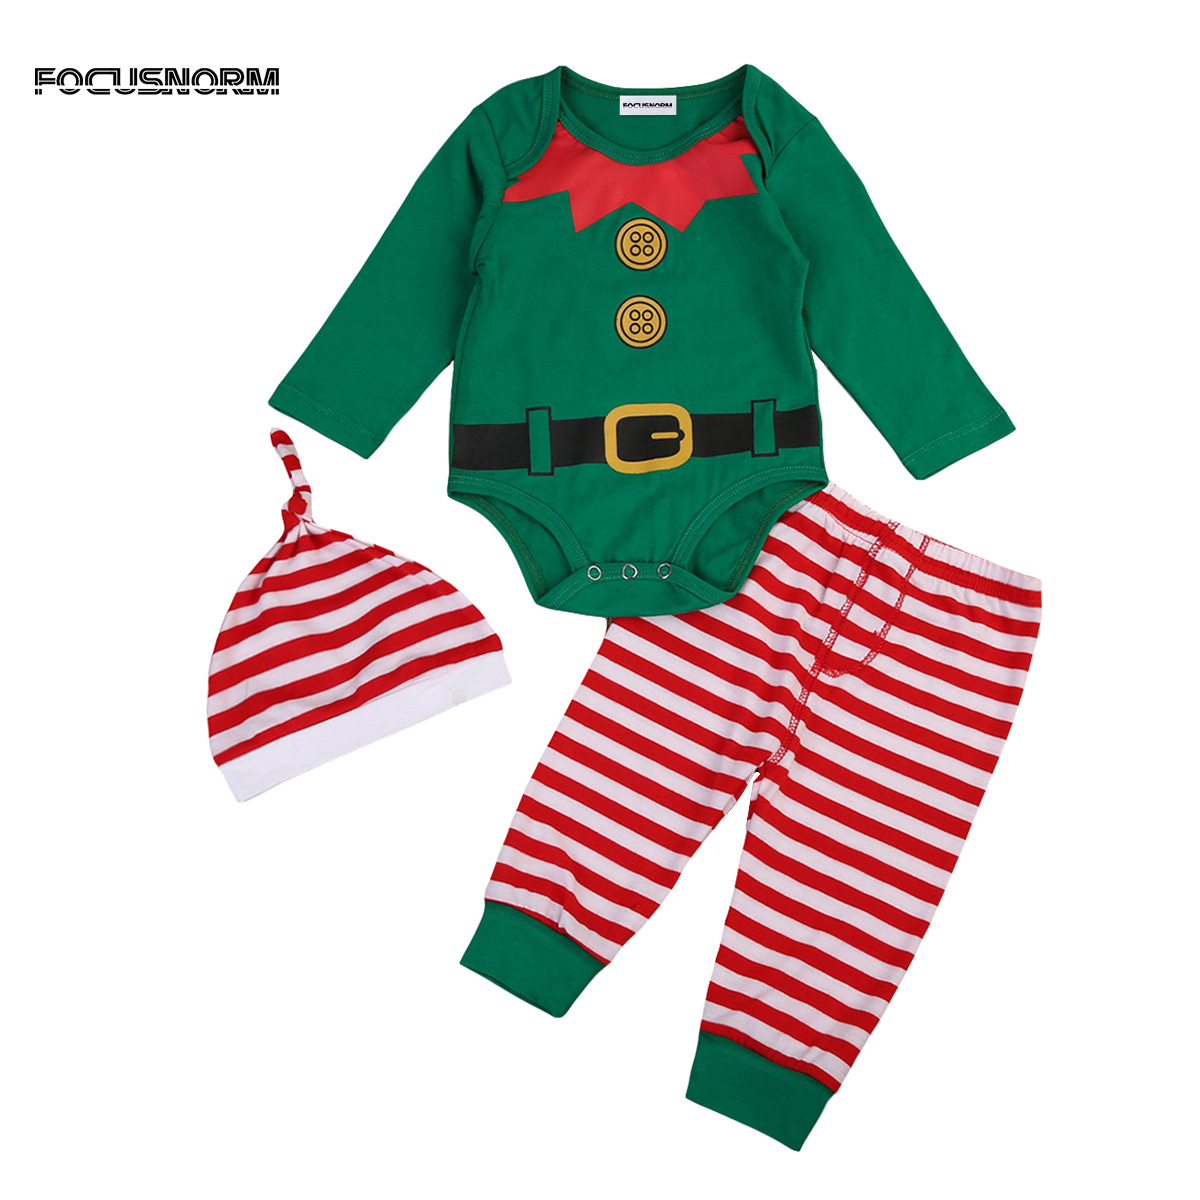 3PCS Christmas Romper Pants Hat Set Newborn Infant Baby Boy Girl Striped Santa Outfits Clothes XMAS 2017 brand new 3pcs set newborn toddler infant baby girl boy clothes romper long sleeve shirt tops pants hat santa candy outfits